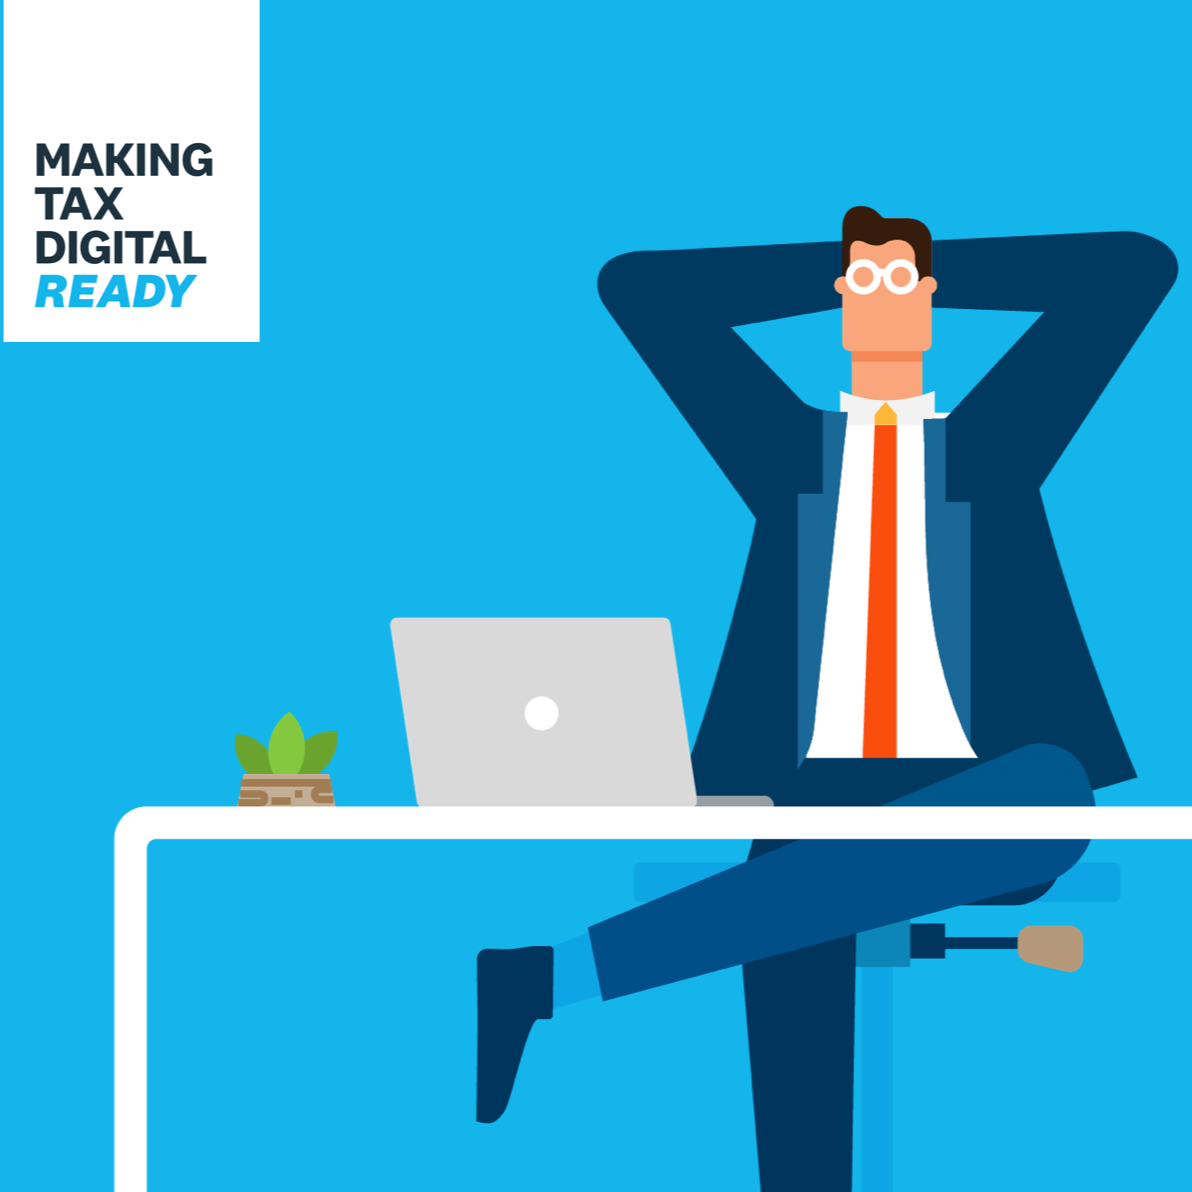 How many VAT registered businesses in the UK need to sign up to Making Tax Digital